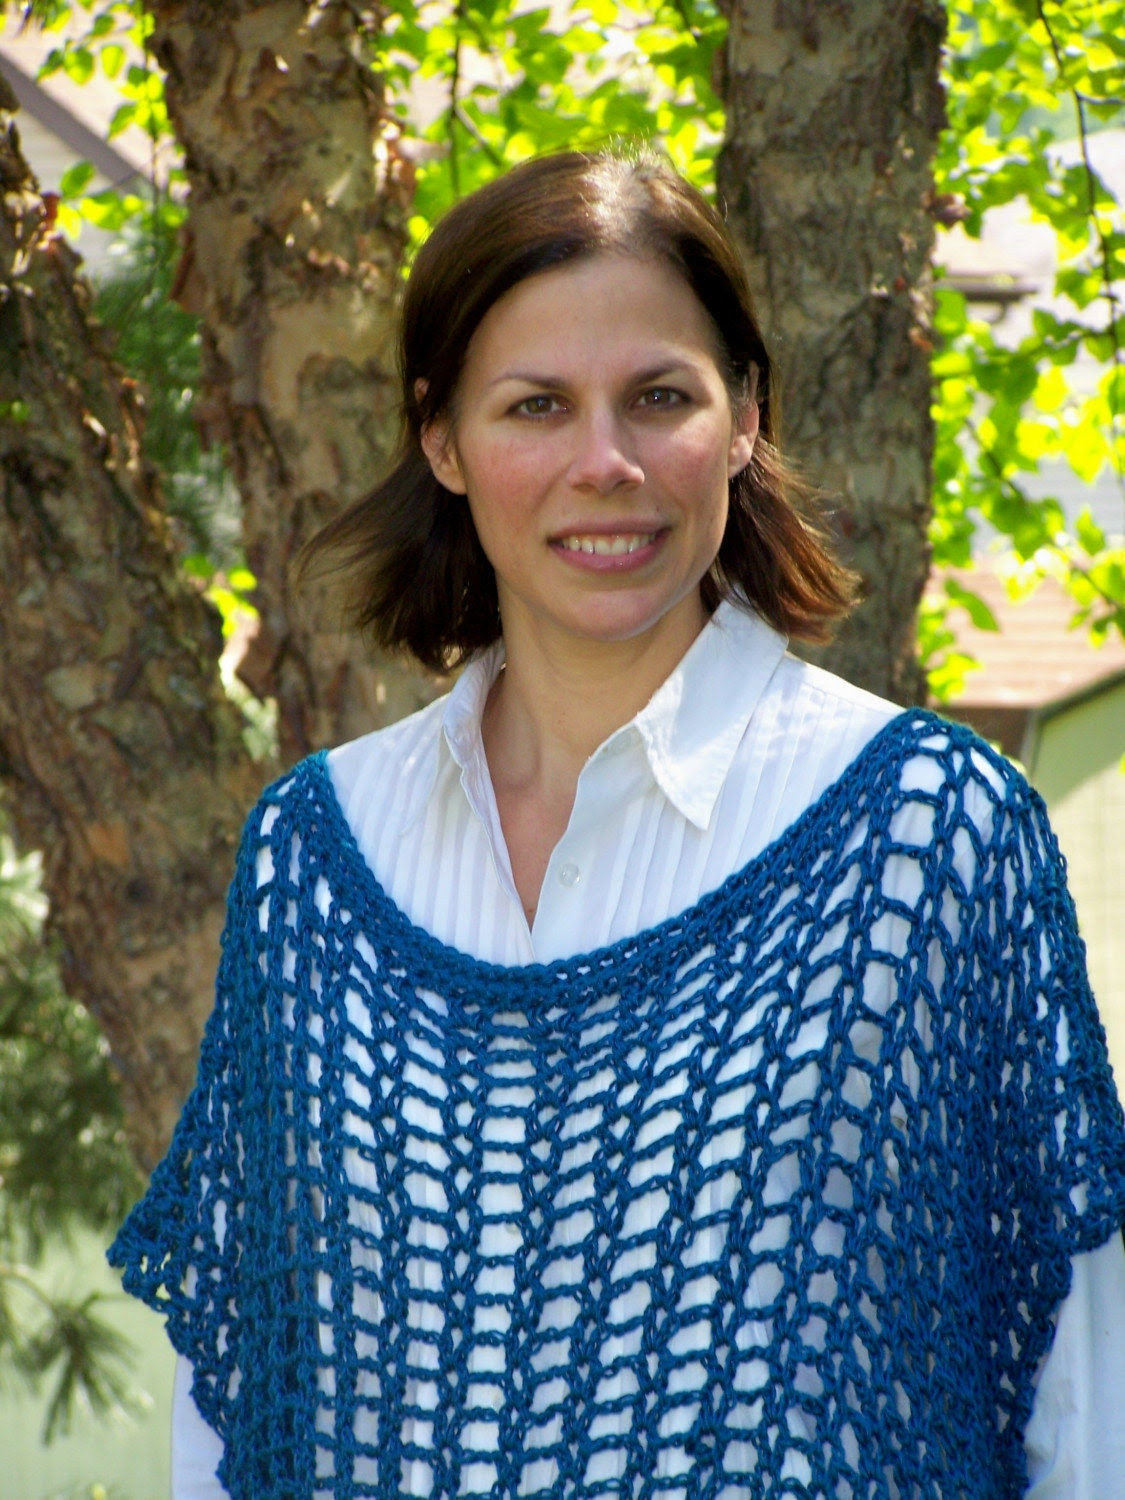 Blue Merino Wool Blend Accent Poncho